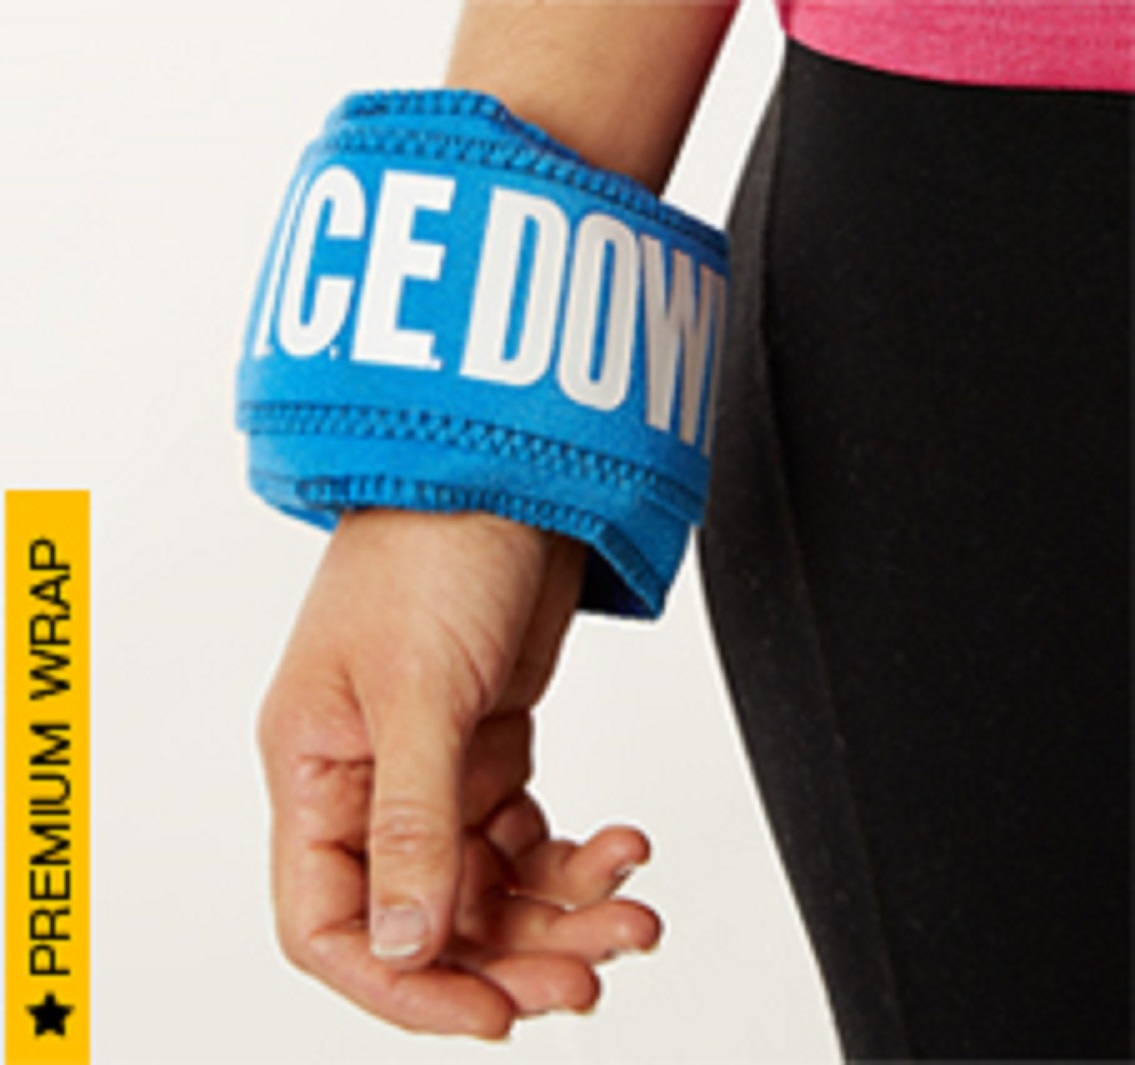 I.C.E. Down - Cold Therapy Ice Wraps